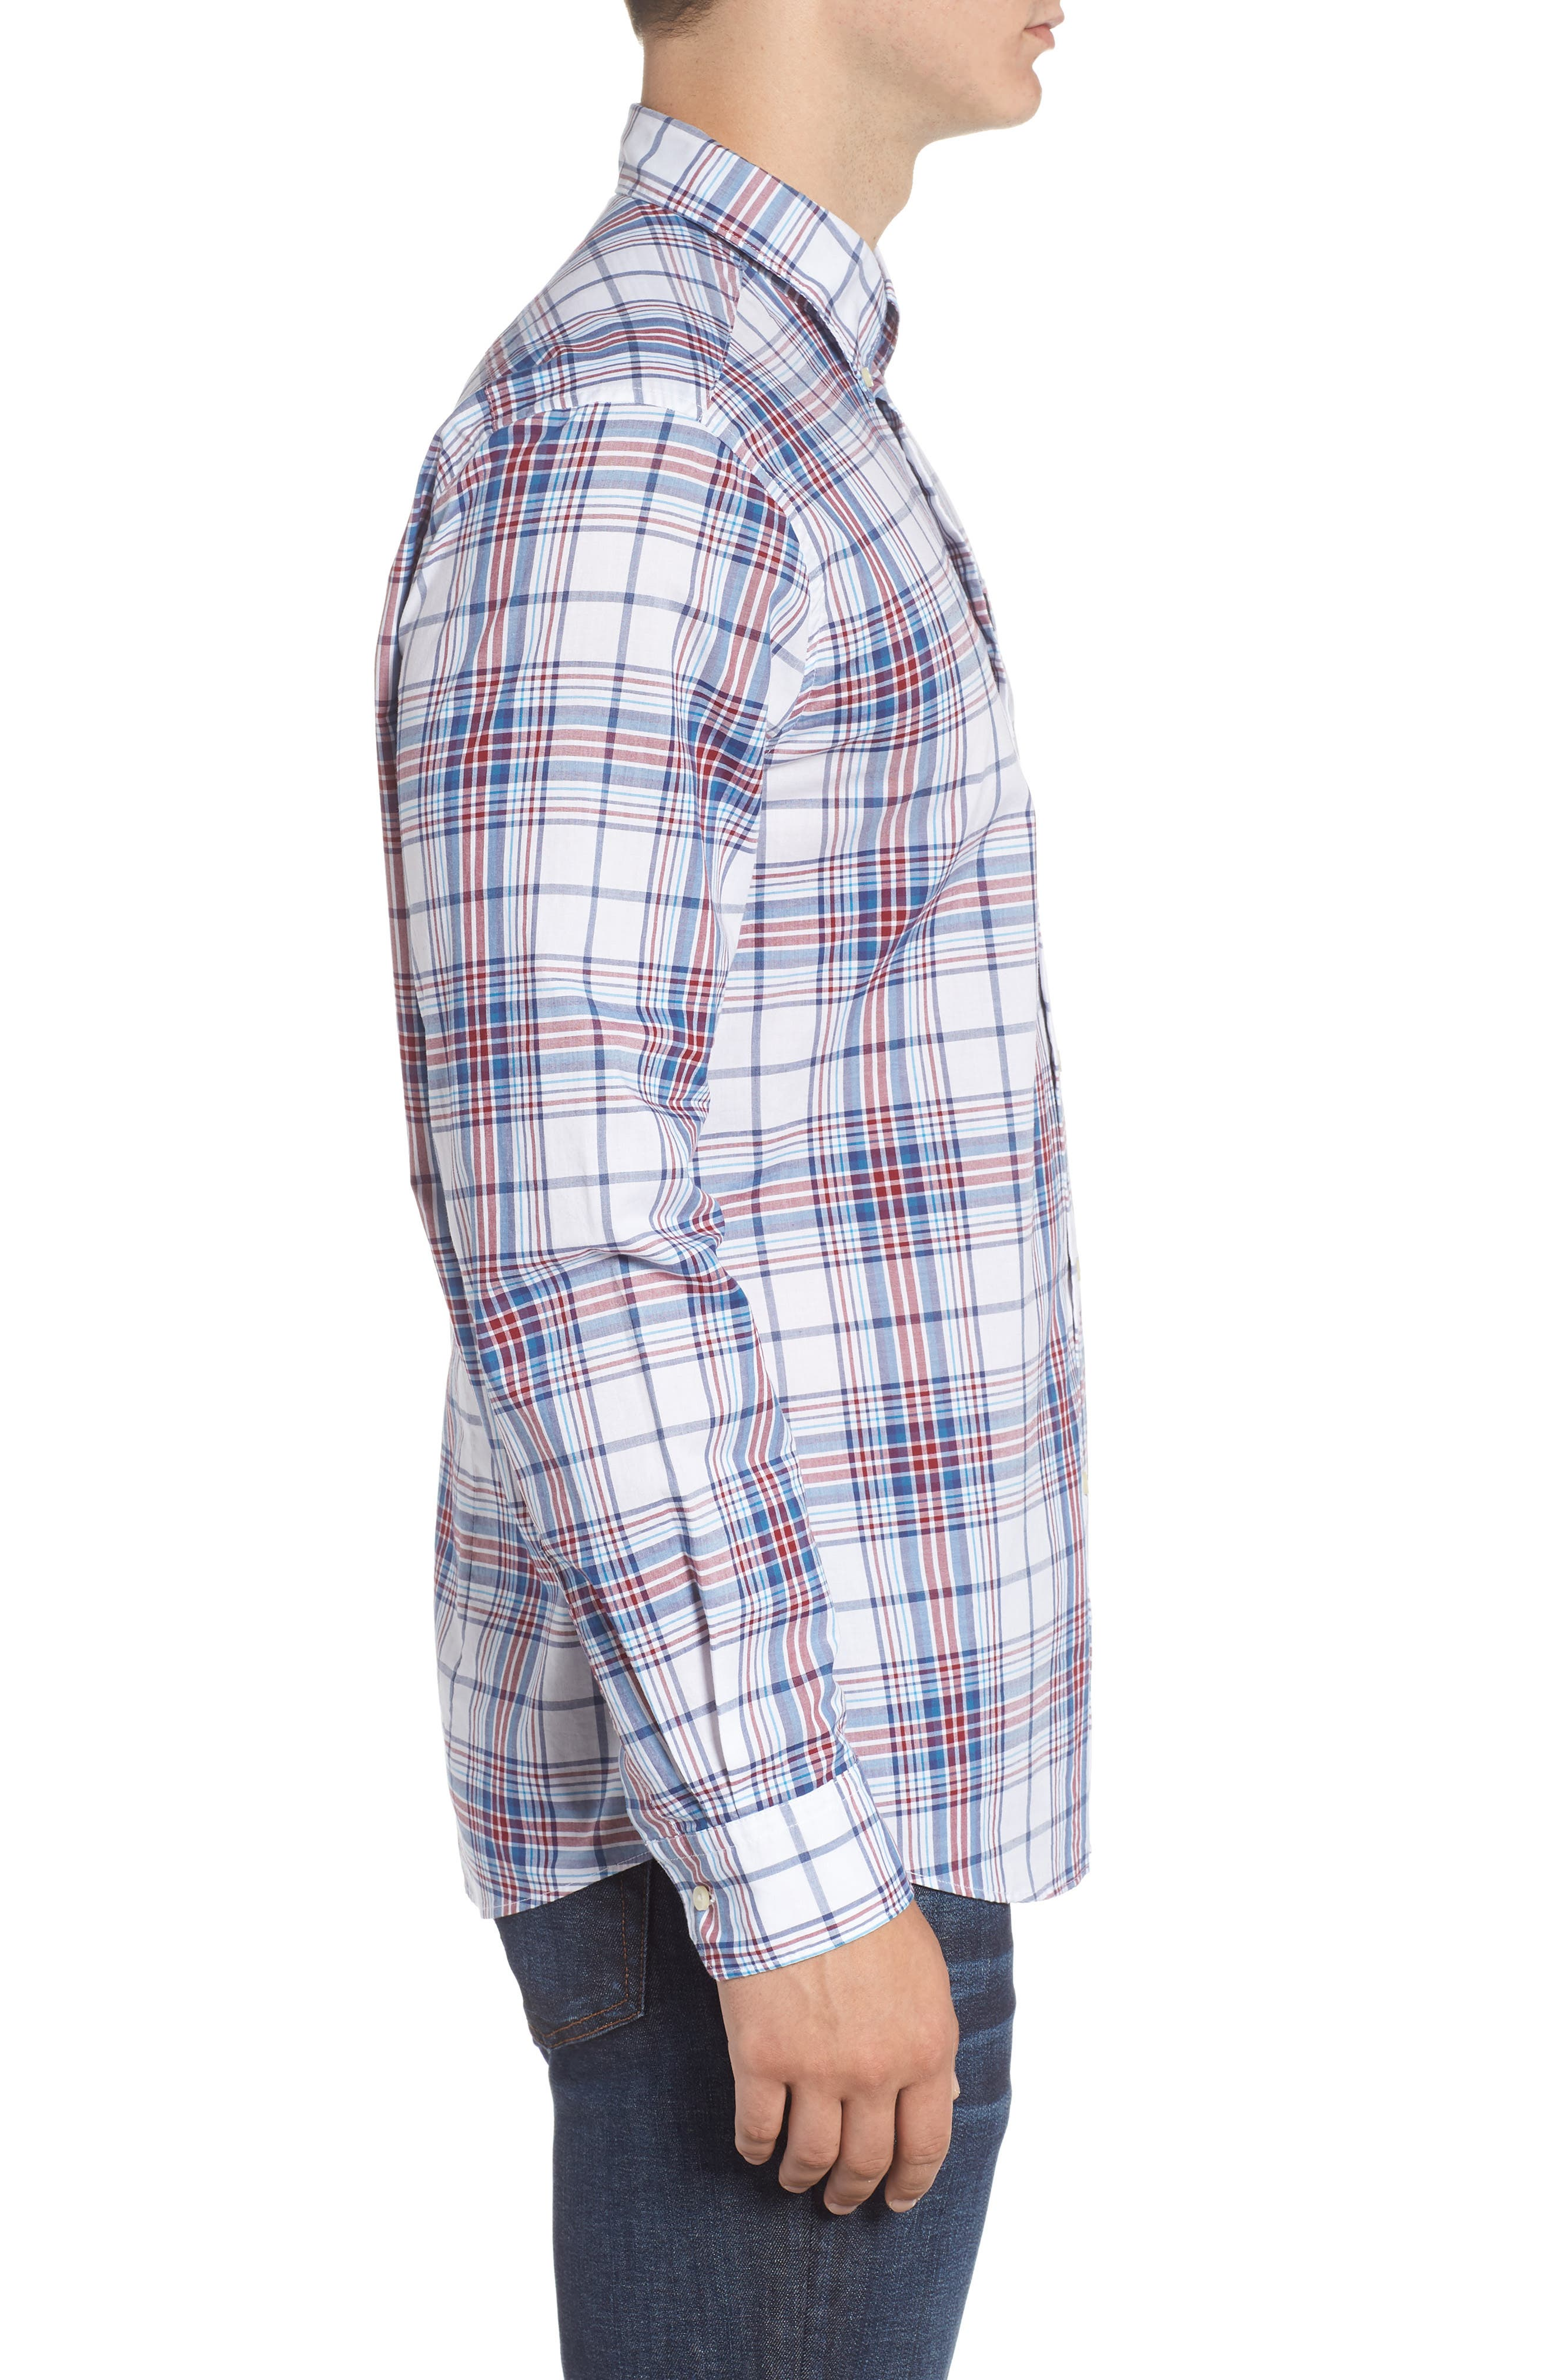 Christopher Tailored Fit Plaid Sport Shirt,                             Alternate thumbnail 4, color,                             Biking Red